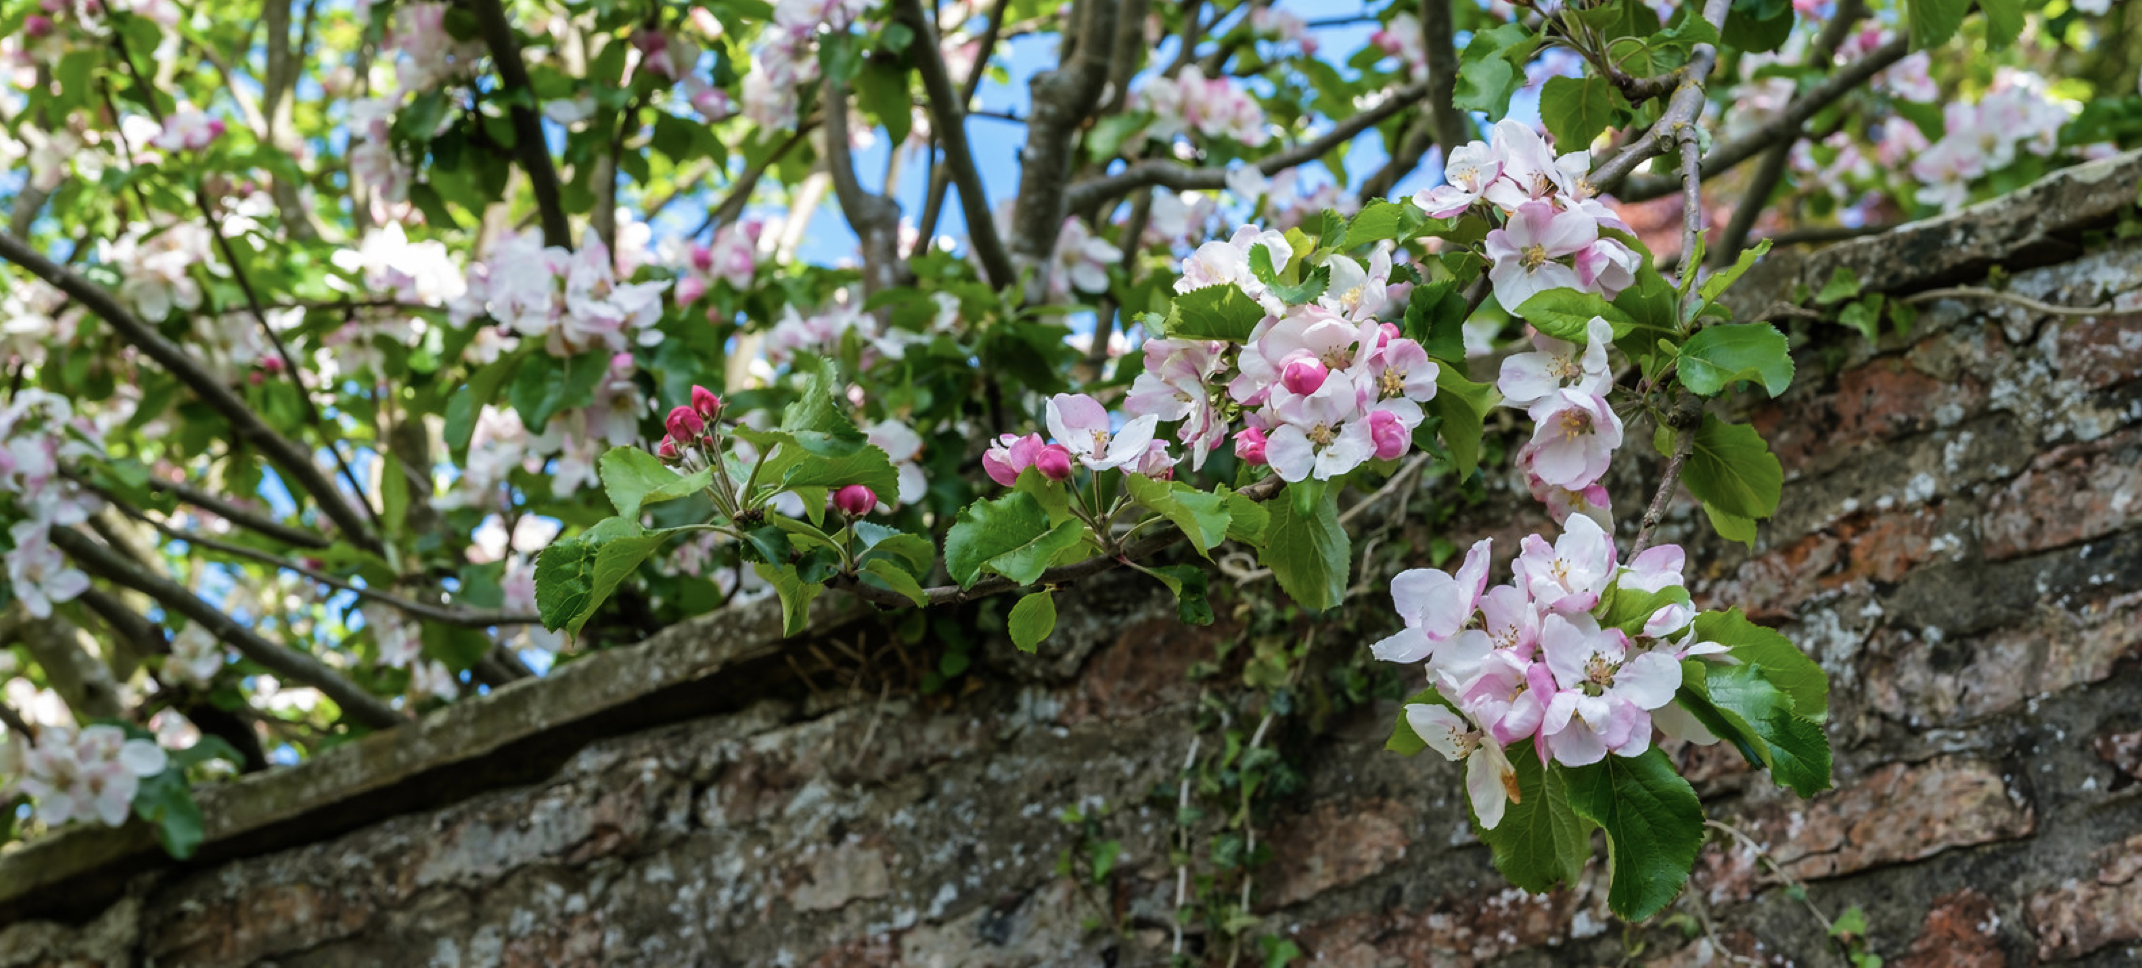 Blossoming apple tree in a walled garden at Sand Hutton Hall, Yorkshire, May 2, 2020 (Photo by Alan Harris) Creative Commons license via Flickr